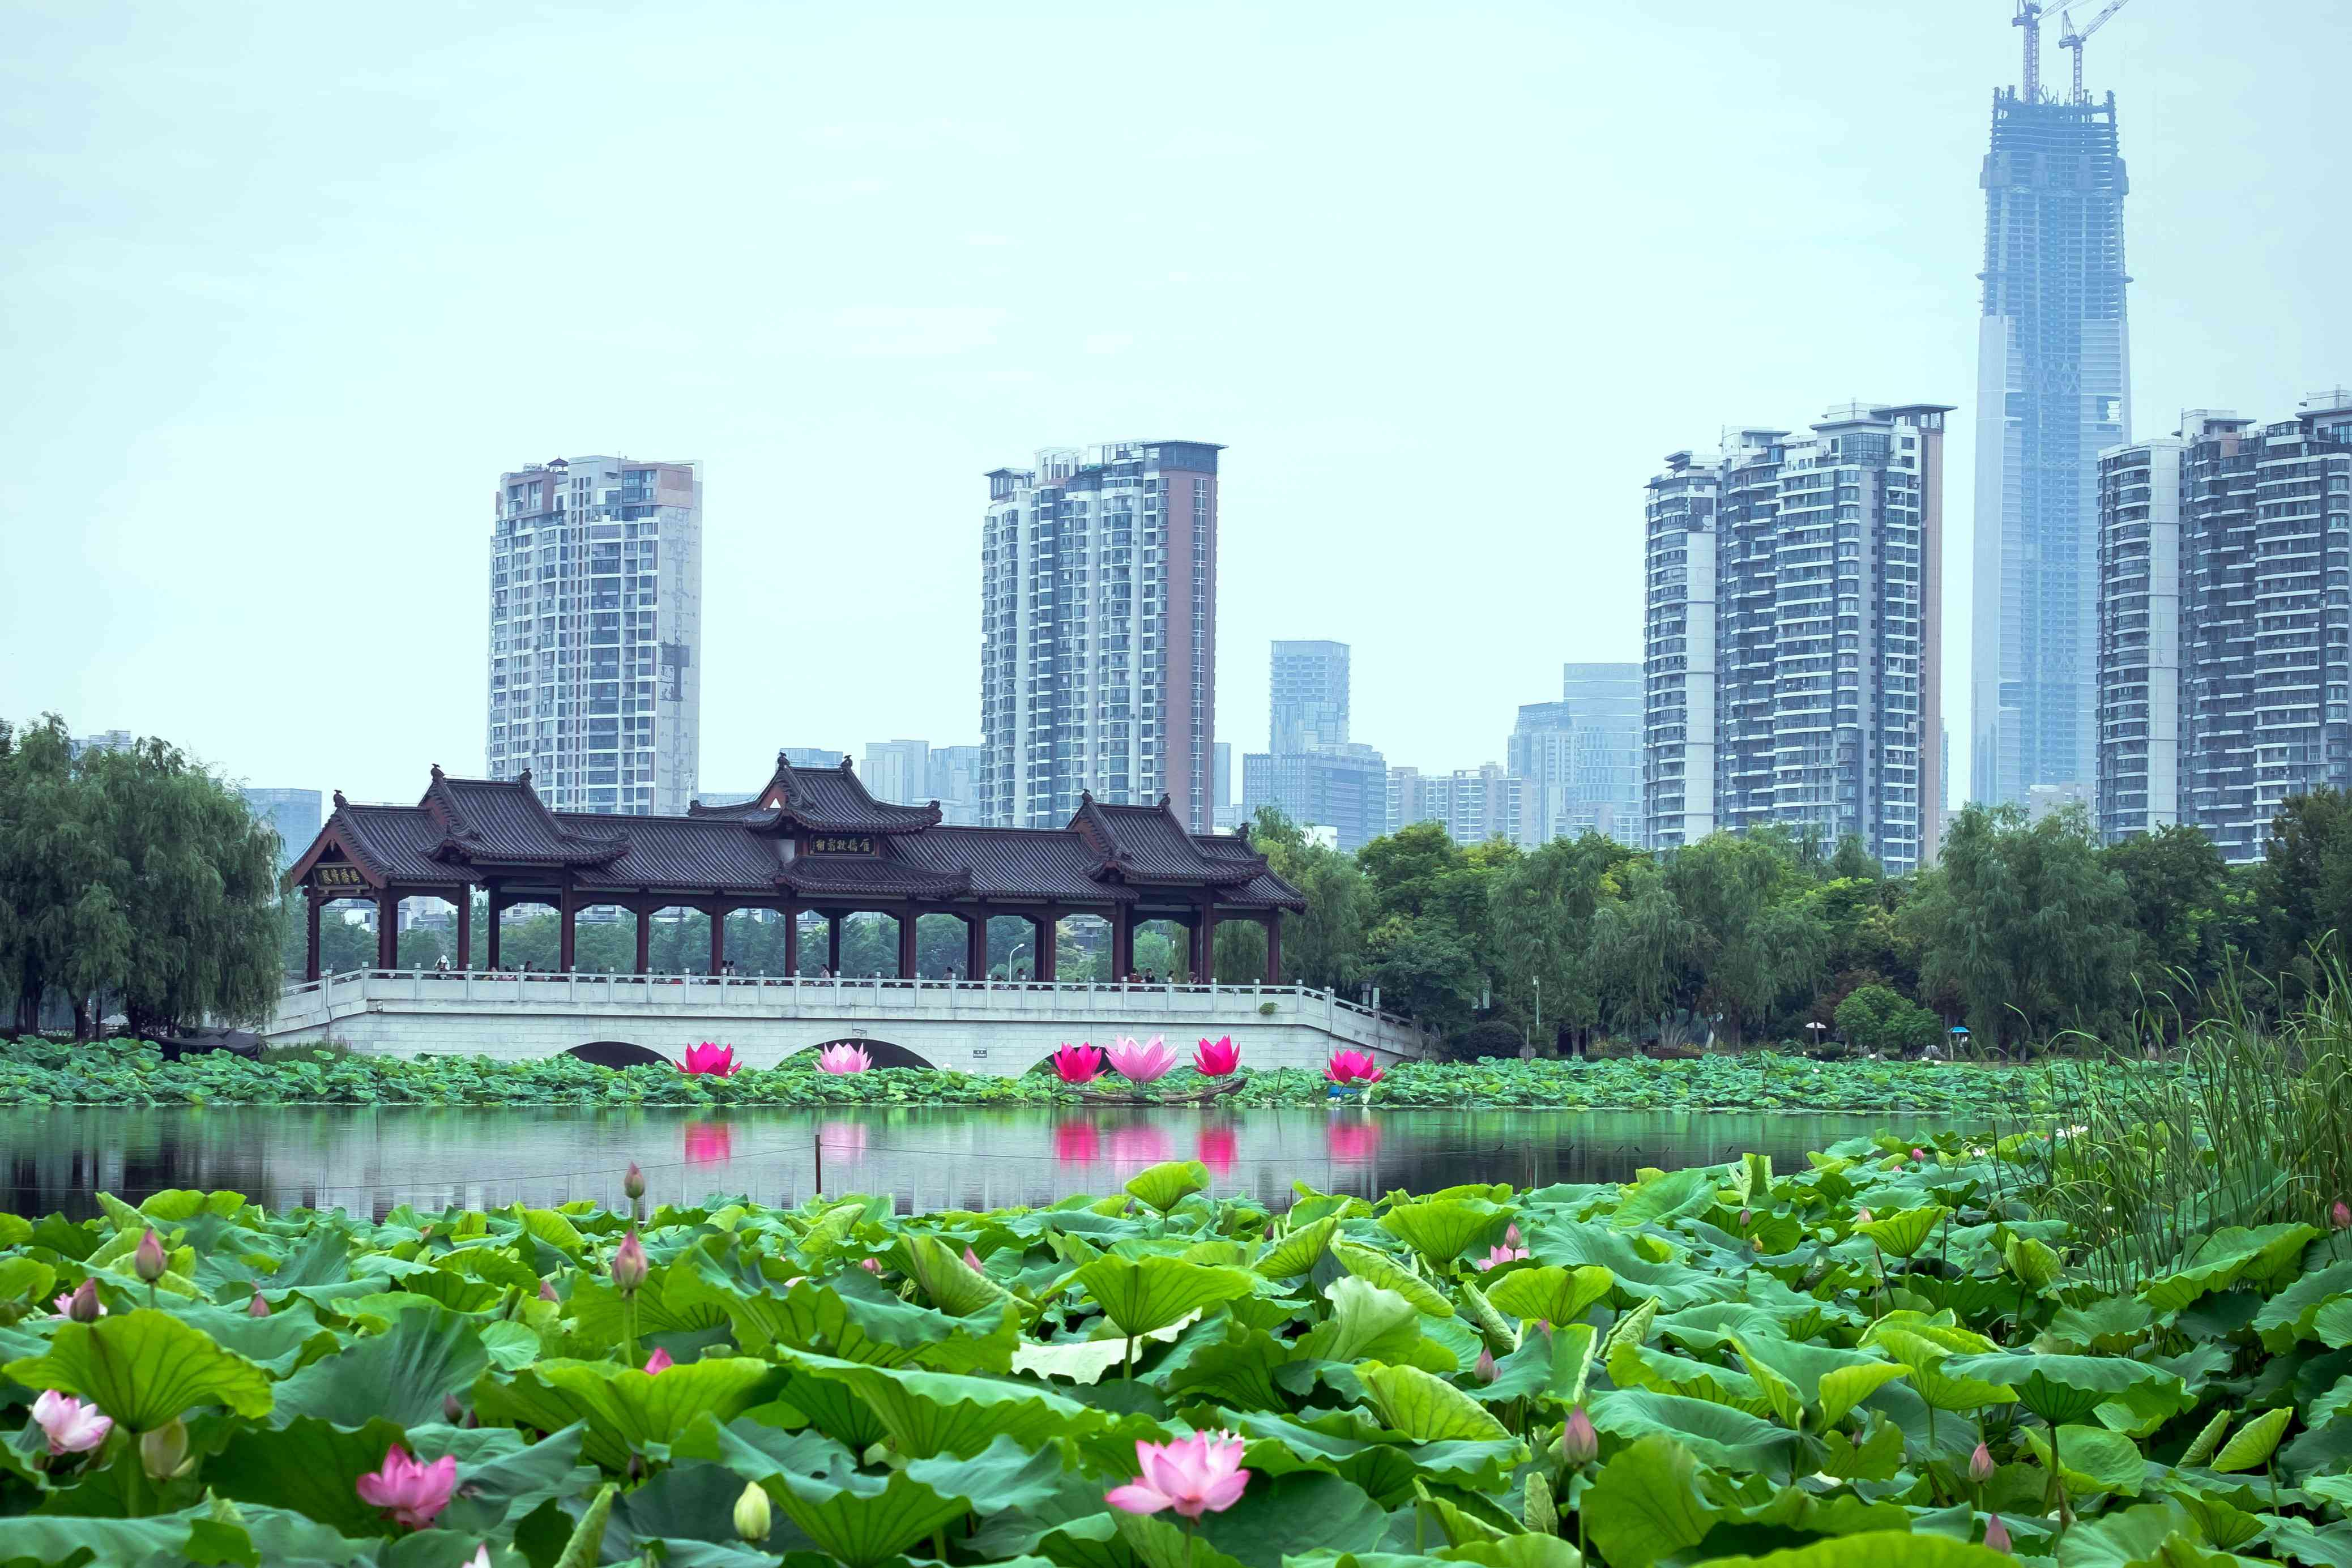 Pink and purple lotuses floating on a lake set against skyscrapers in Hubei